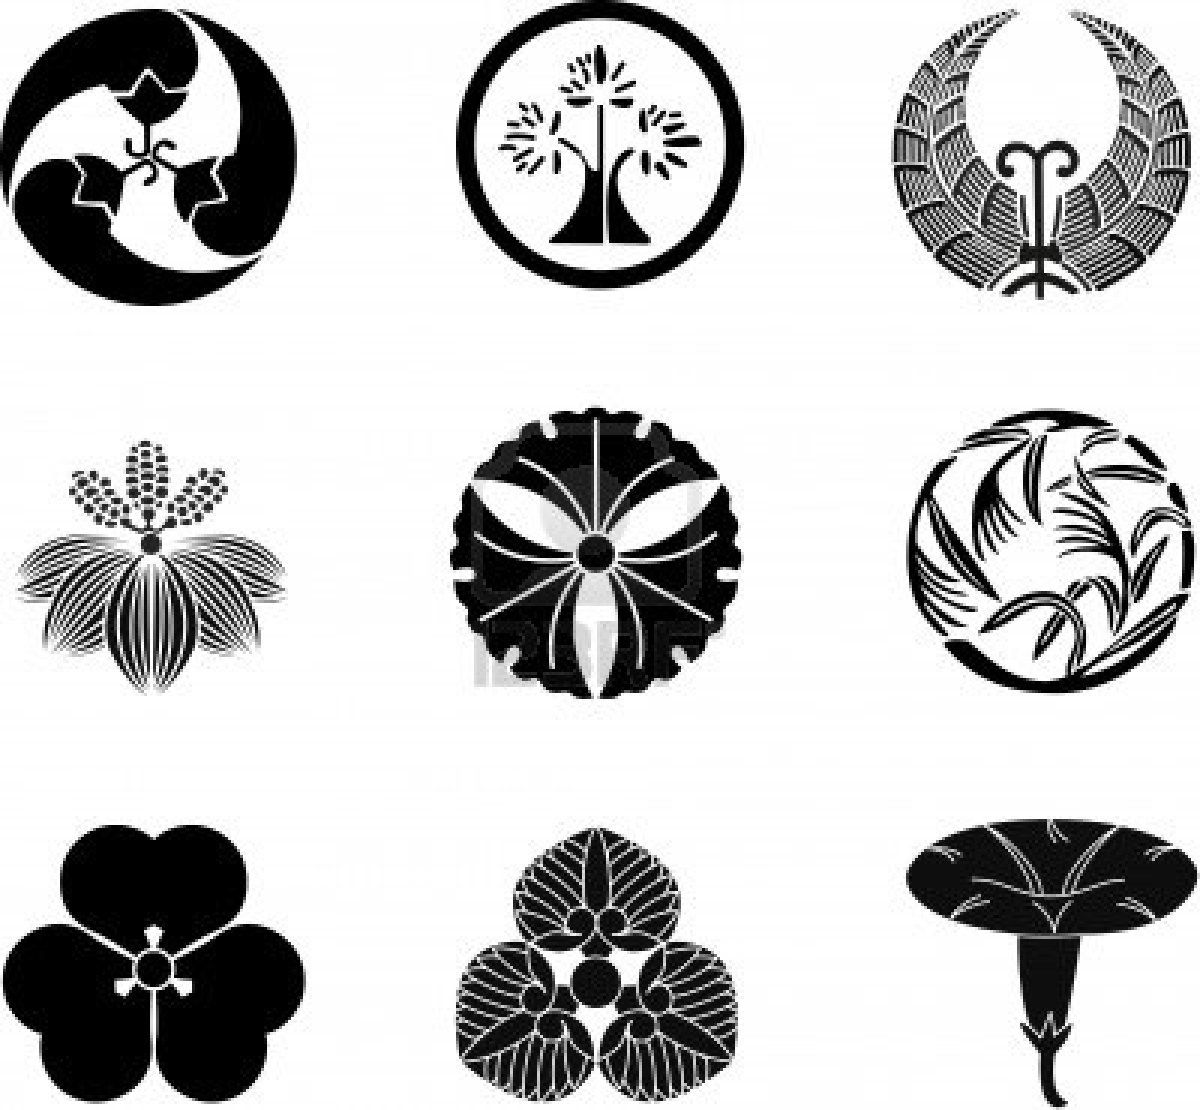 9719262 japanese family crests vector 11g 12001110 pixels explore family crest symbols crests and more biocorpaavc Gallery